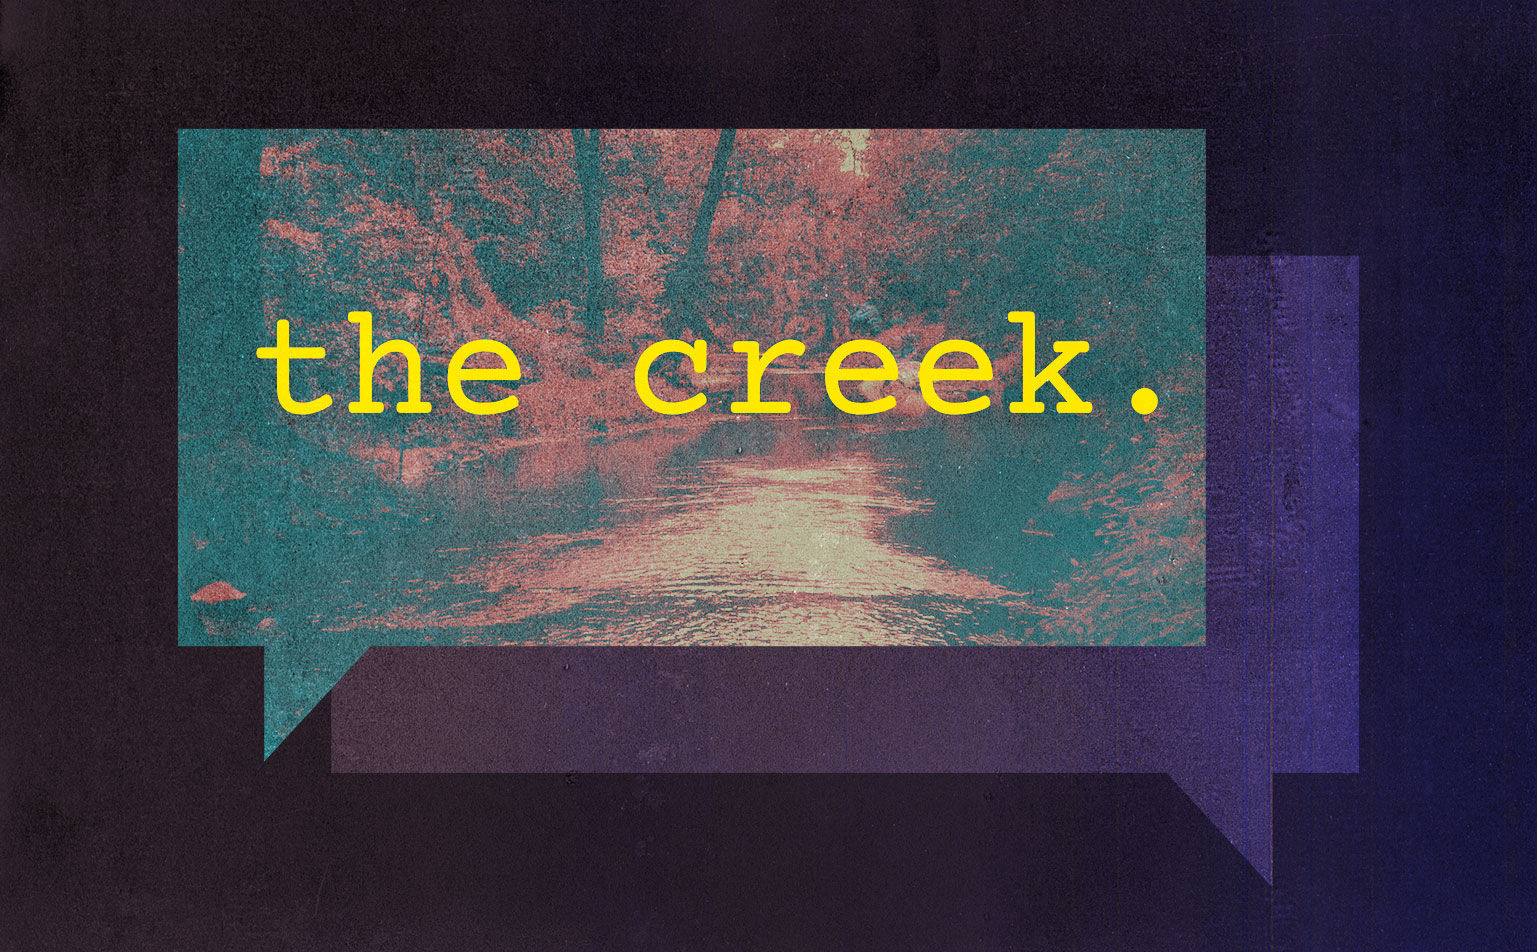 The Creek: A Serial-Like Podcast Produced By High School Students